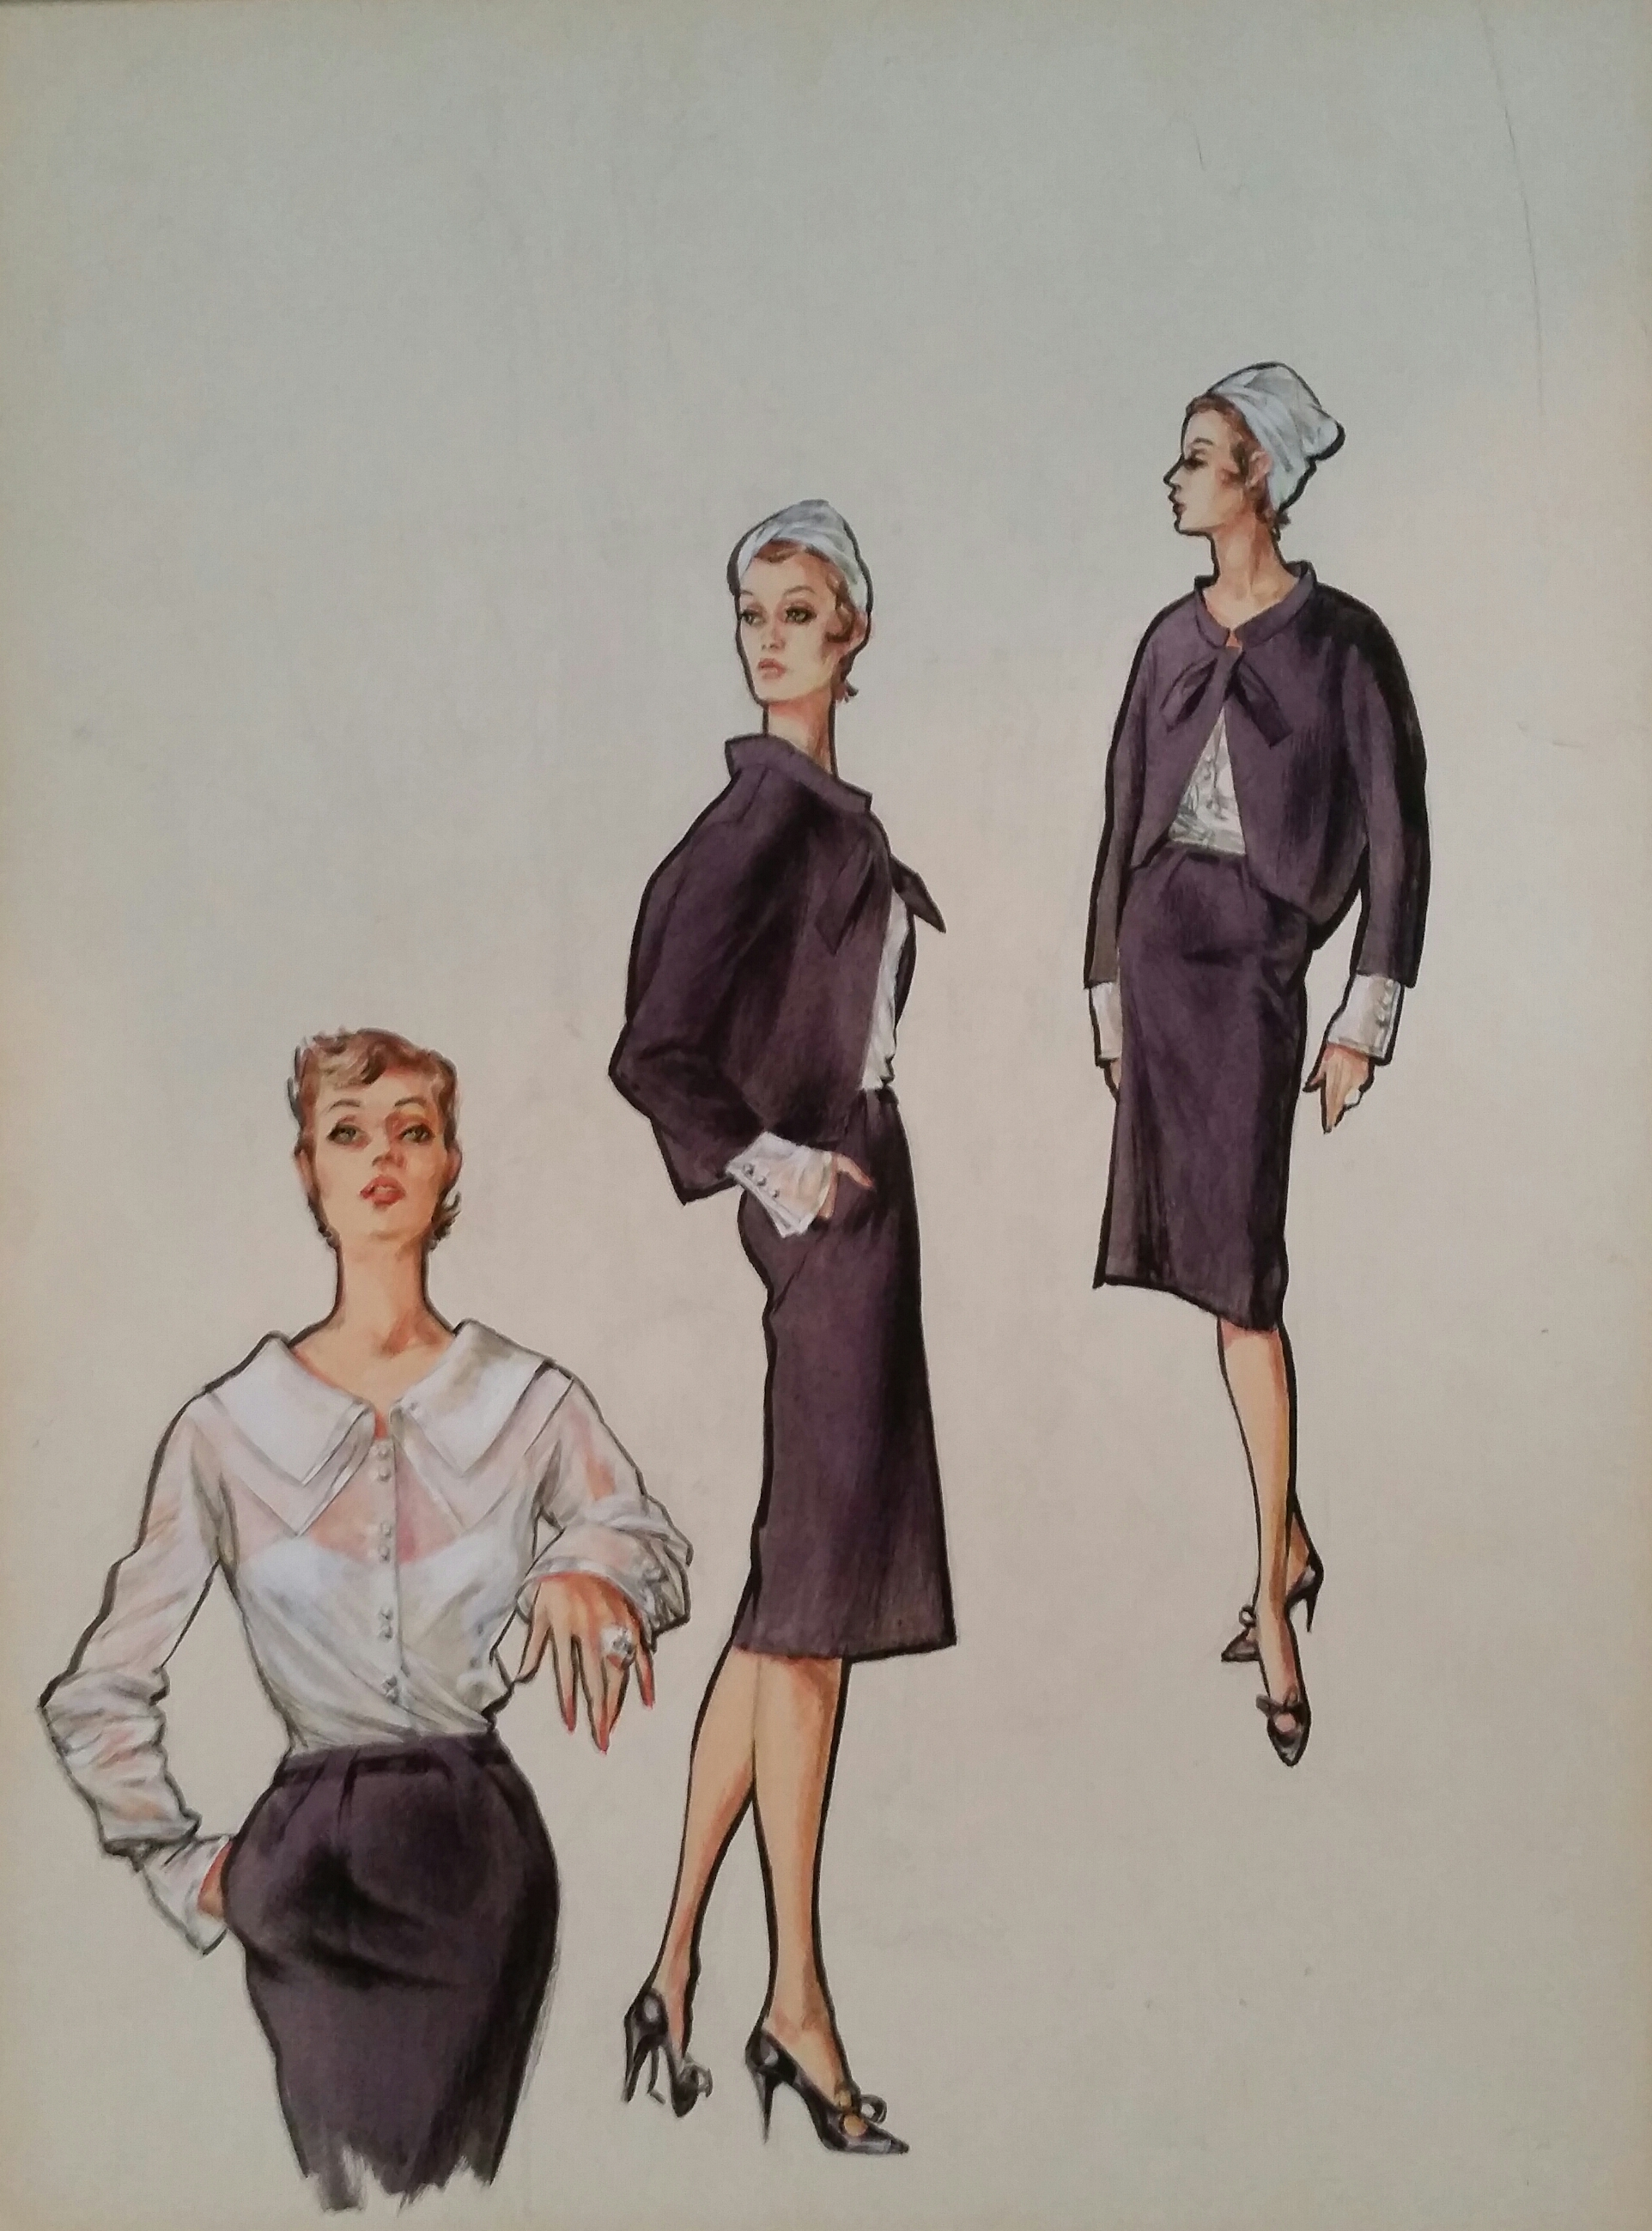 MARY ANNE NYBERG ILLUSTRATION